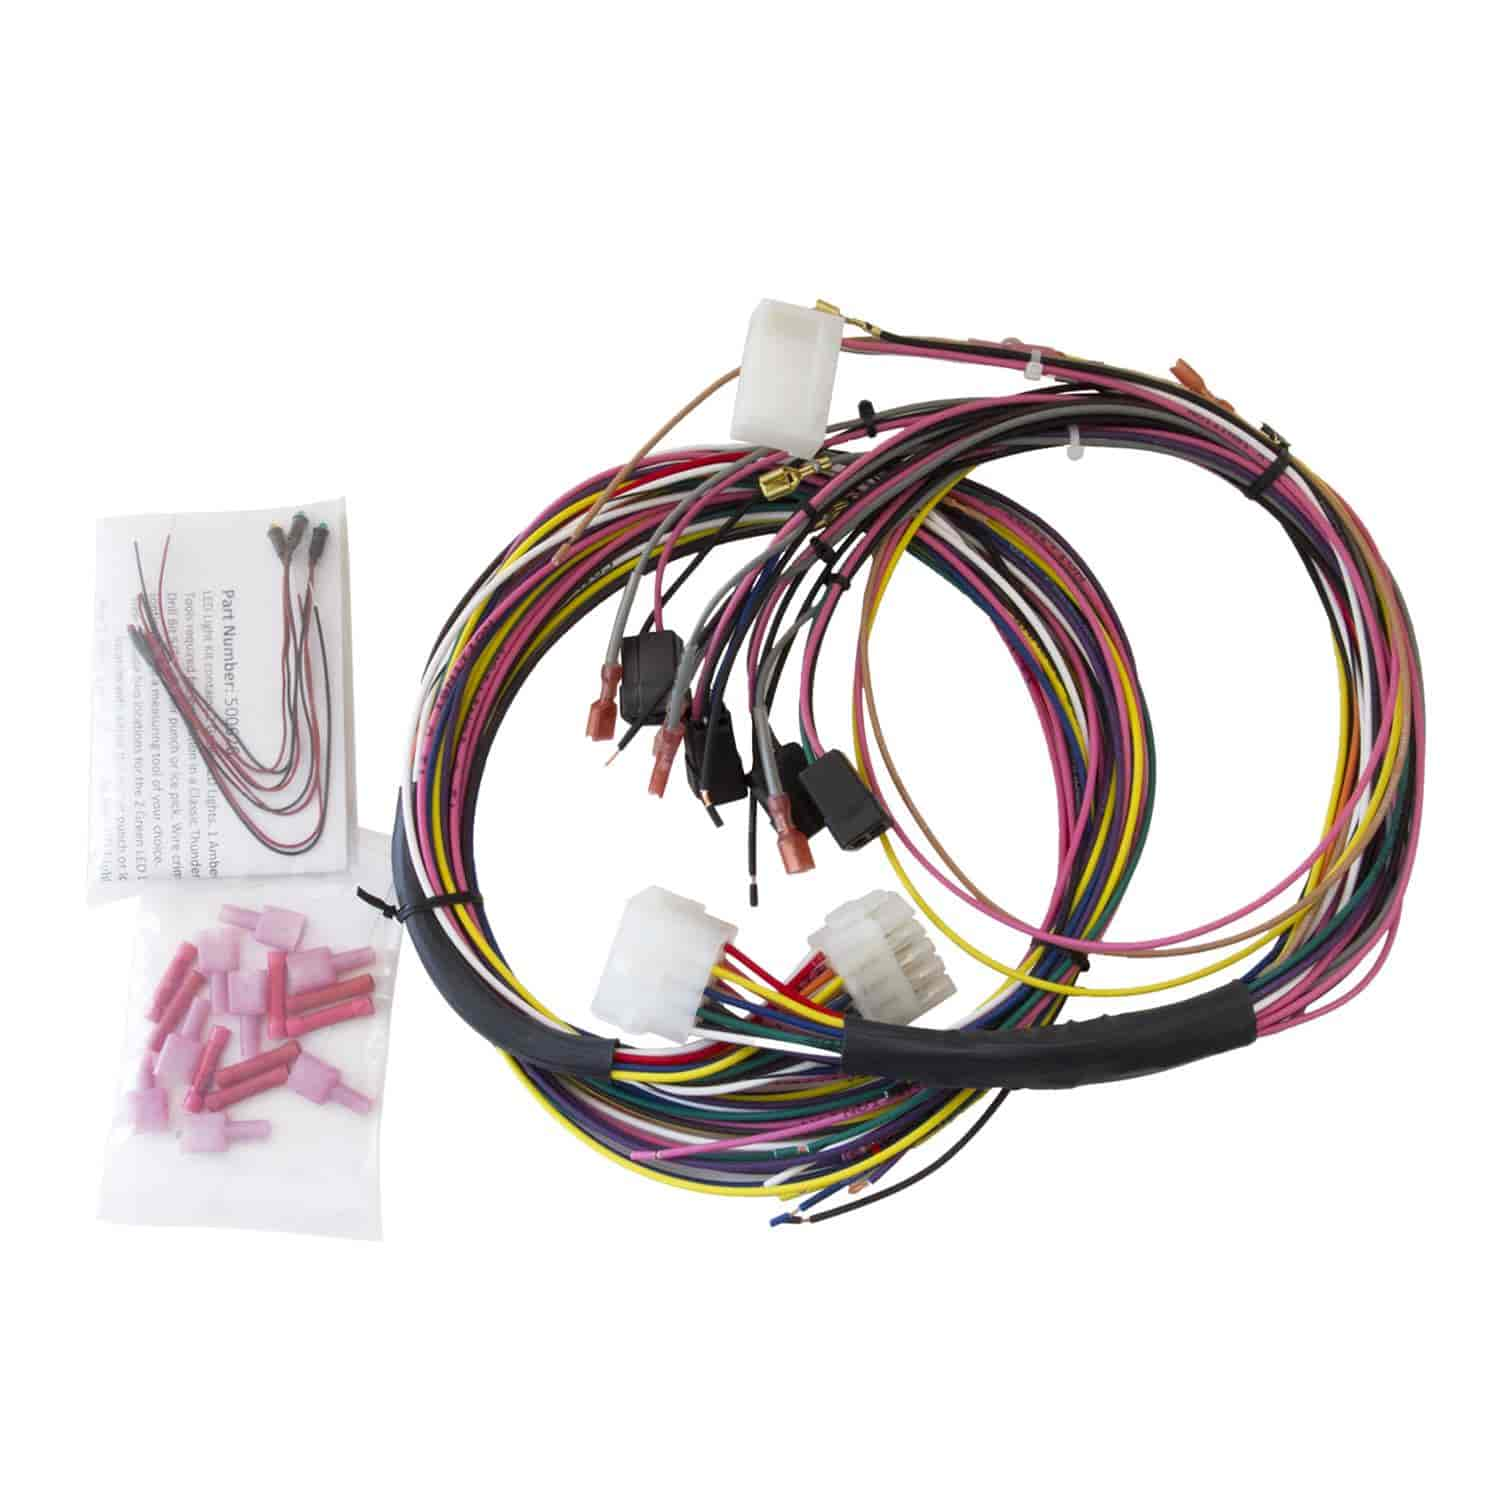 105 2198 auto meter 2198 replacement wiring harness universal jegs VW Wiring Harness Kits at honlapkeszites.co